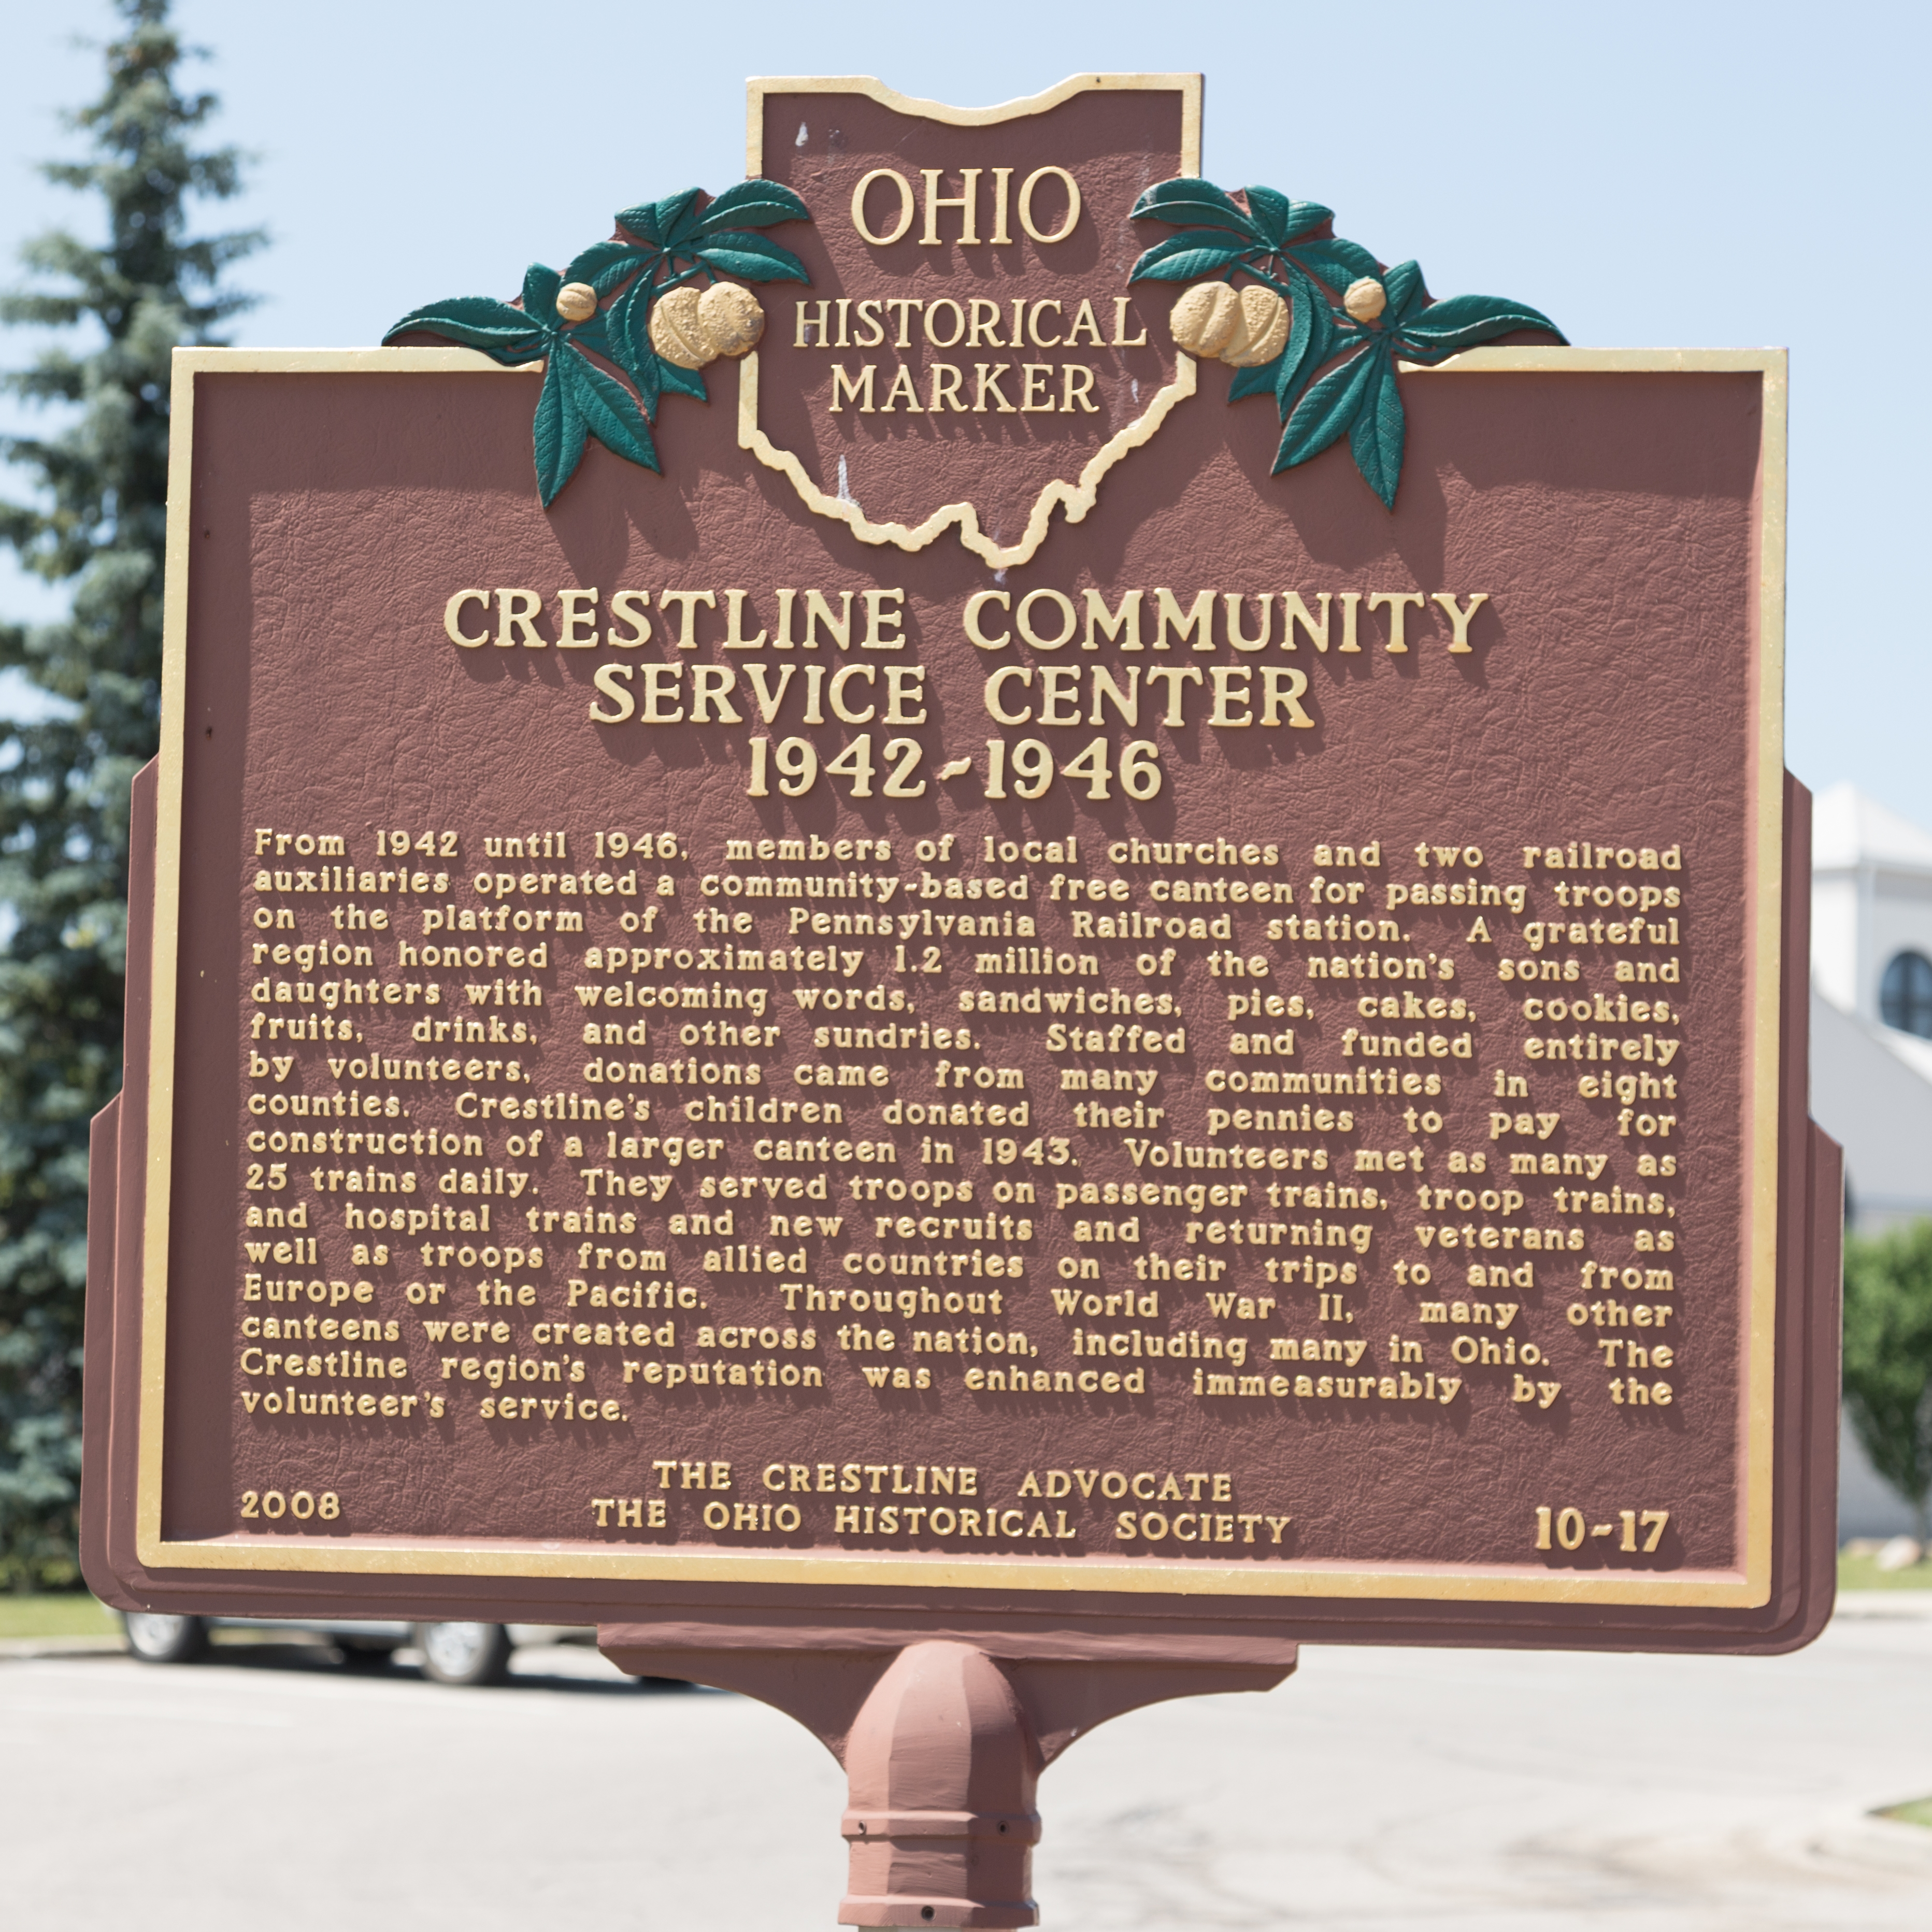 Crestline Community Service Center Marker